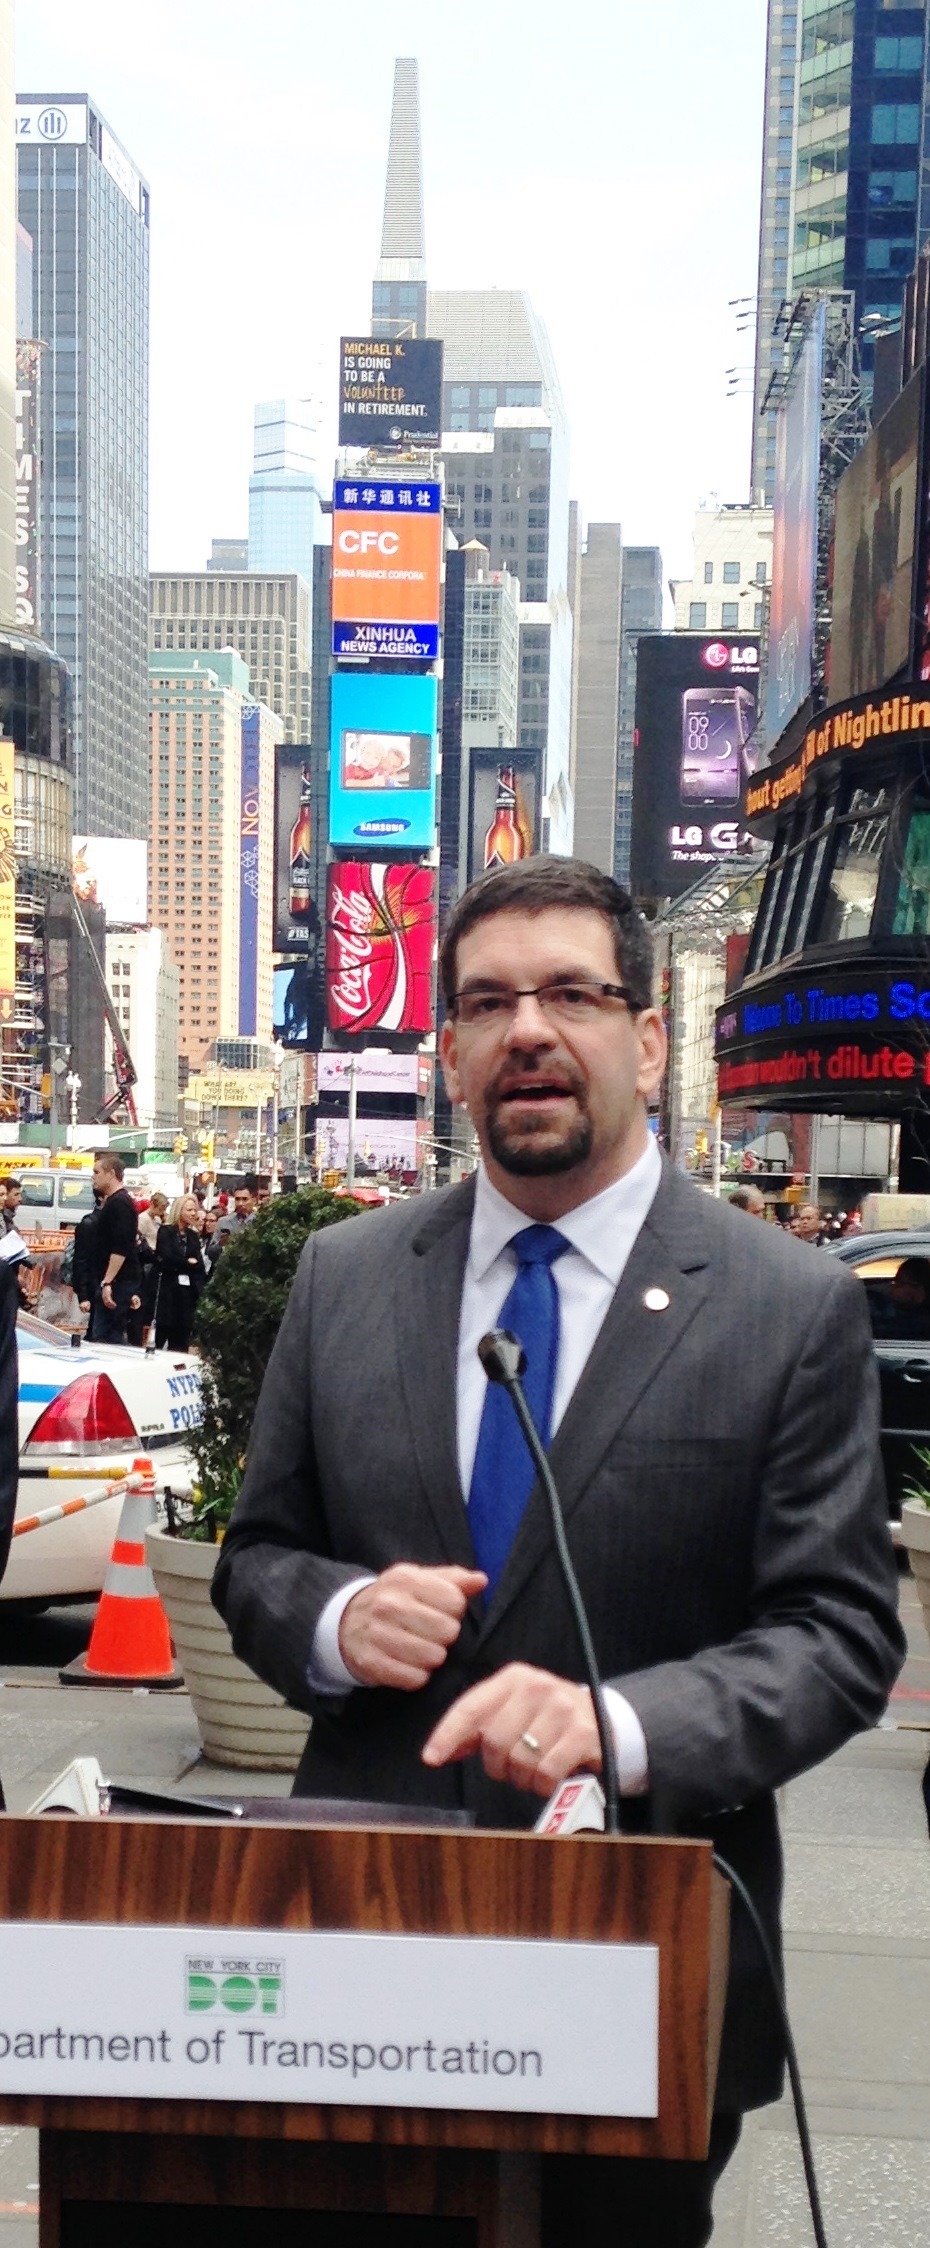 NHTSA Acting Administrator David Friedman talks about pedestrian safety in Times Square in New York City